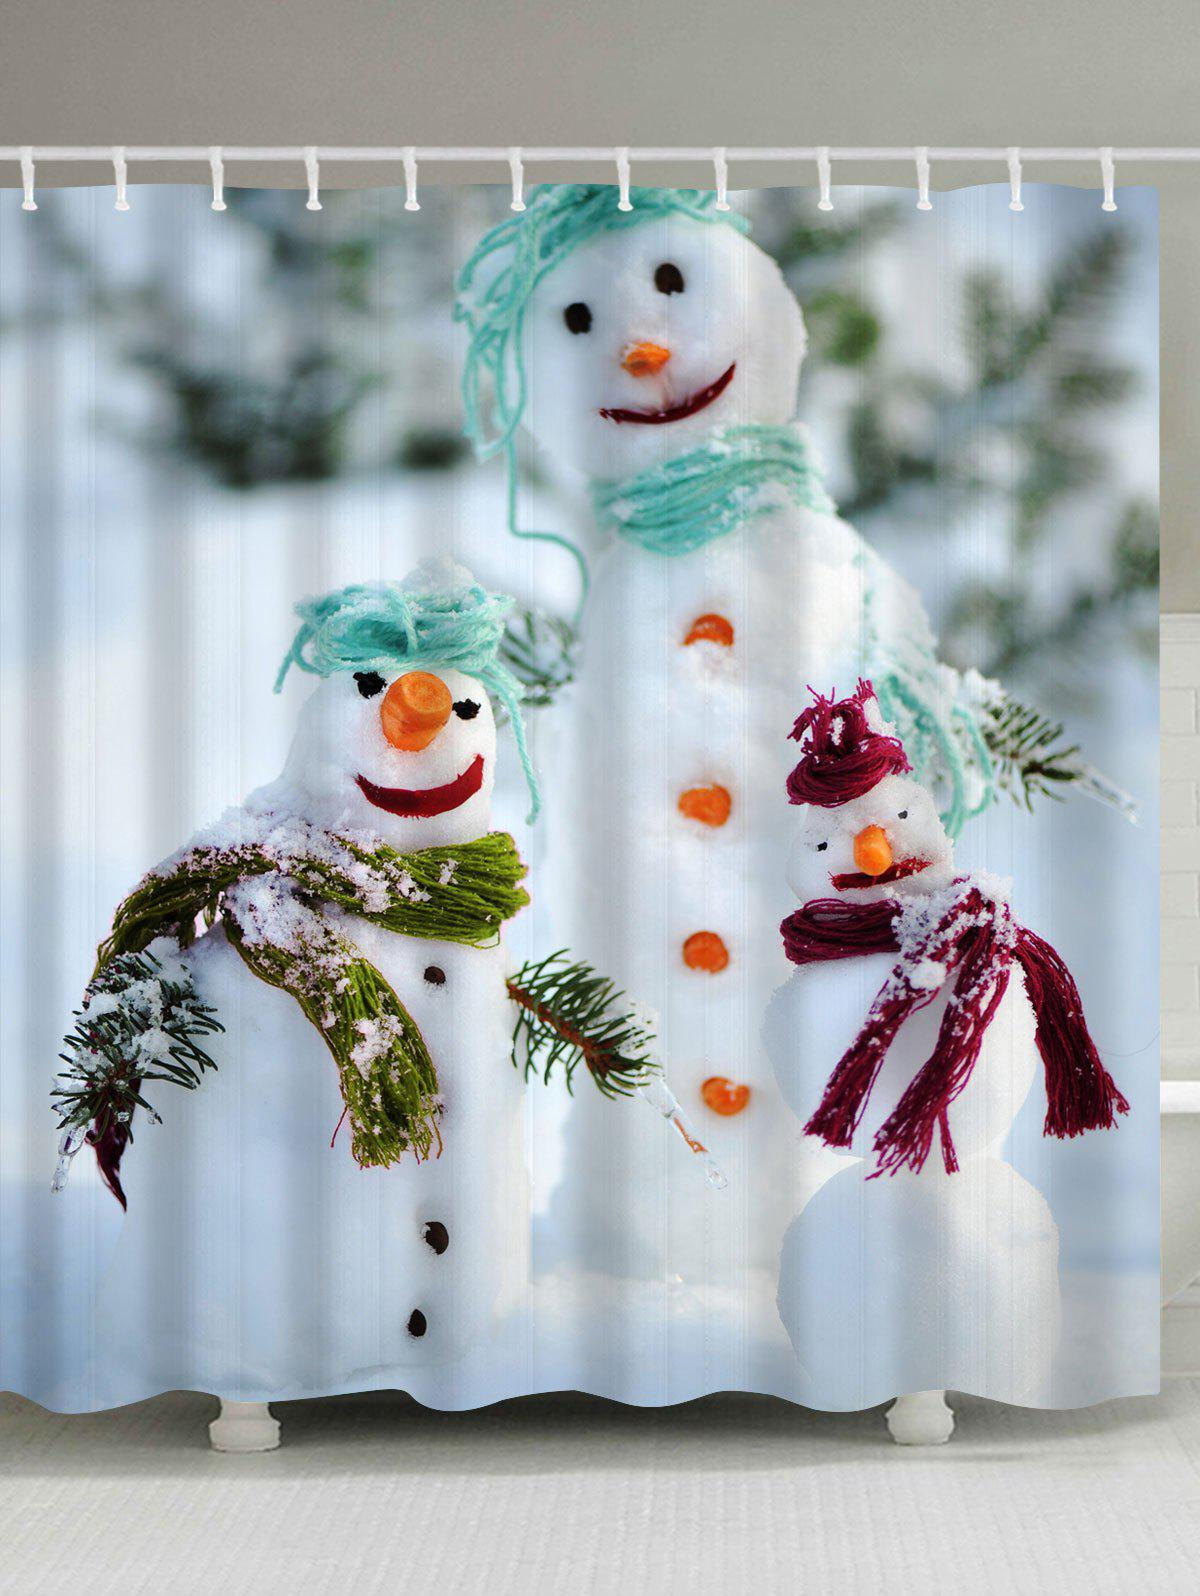 Christmas Snowman Waterproof Shower CurtainHOME<br><br>Size: W71 INCH * L71 INCH; Color: COLORMIX; Products Type: Shower Curtains; Materials: Polyester; Pattern: Snowman; Style: Festival; Number of Hook Holes: W59 inch*L71 inch: 10; W71 inch*L71 inch: 12; W71 inch*L79 inch: 12; Package Contents: 1 x Shower Curtain 1 x Hooks (Set);